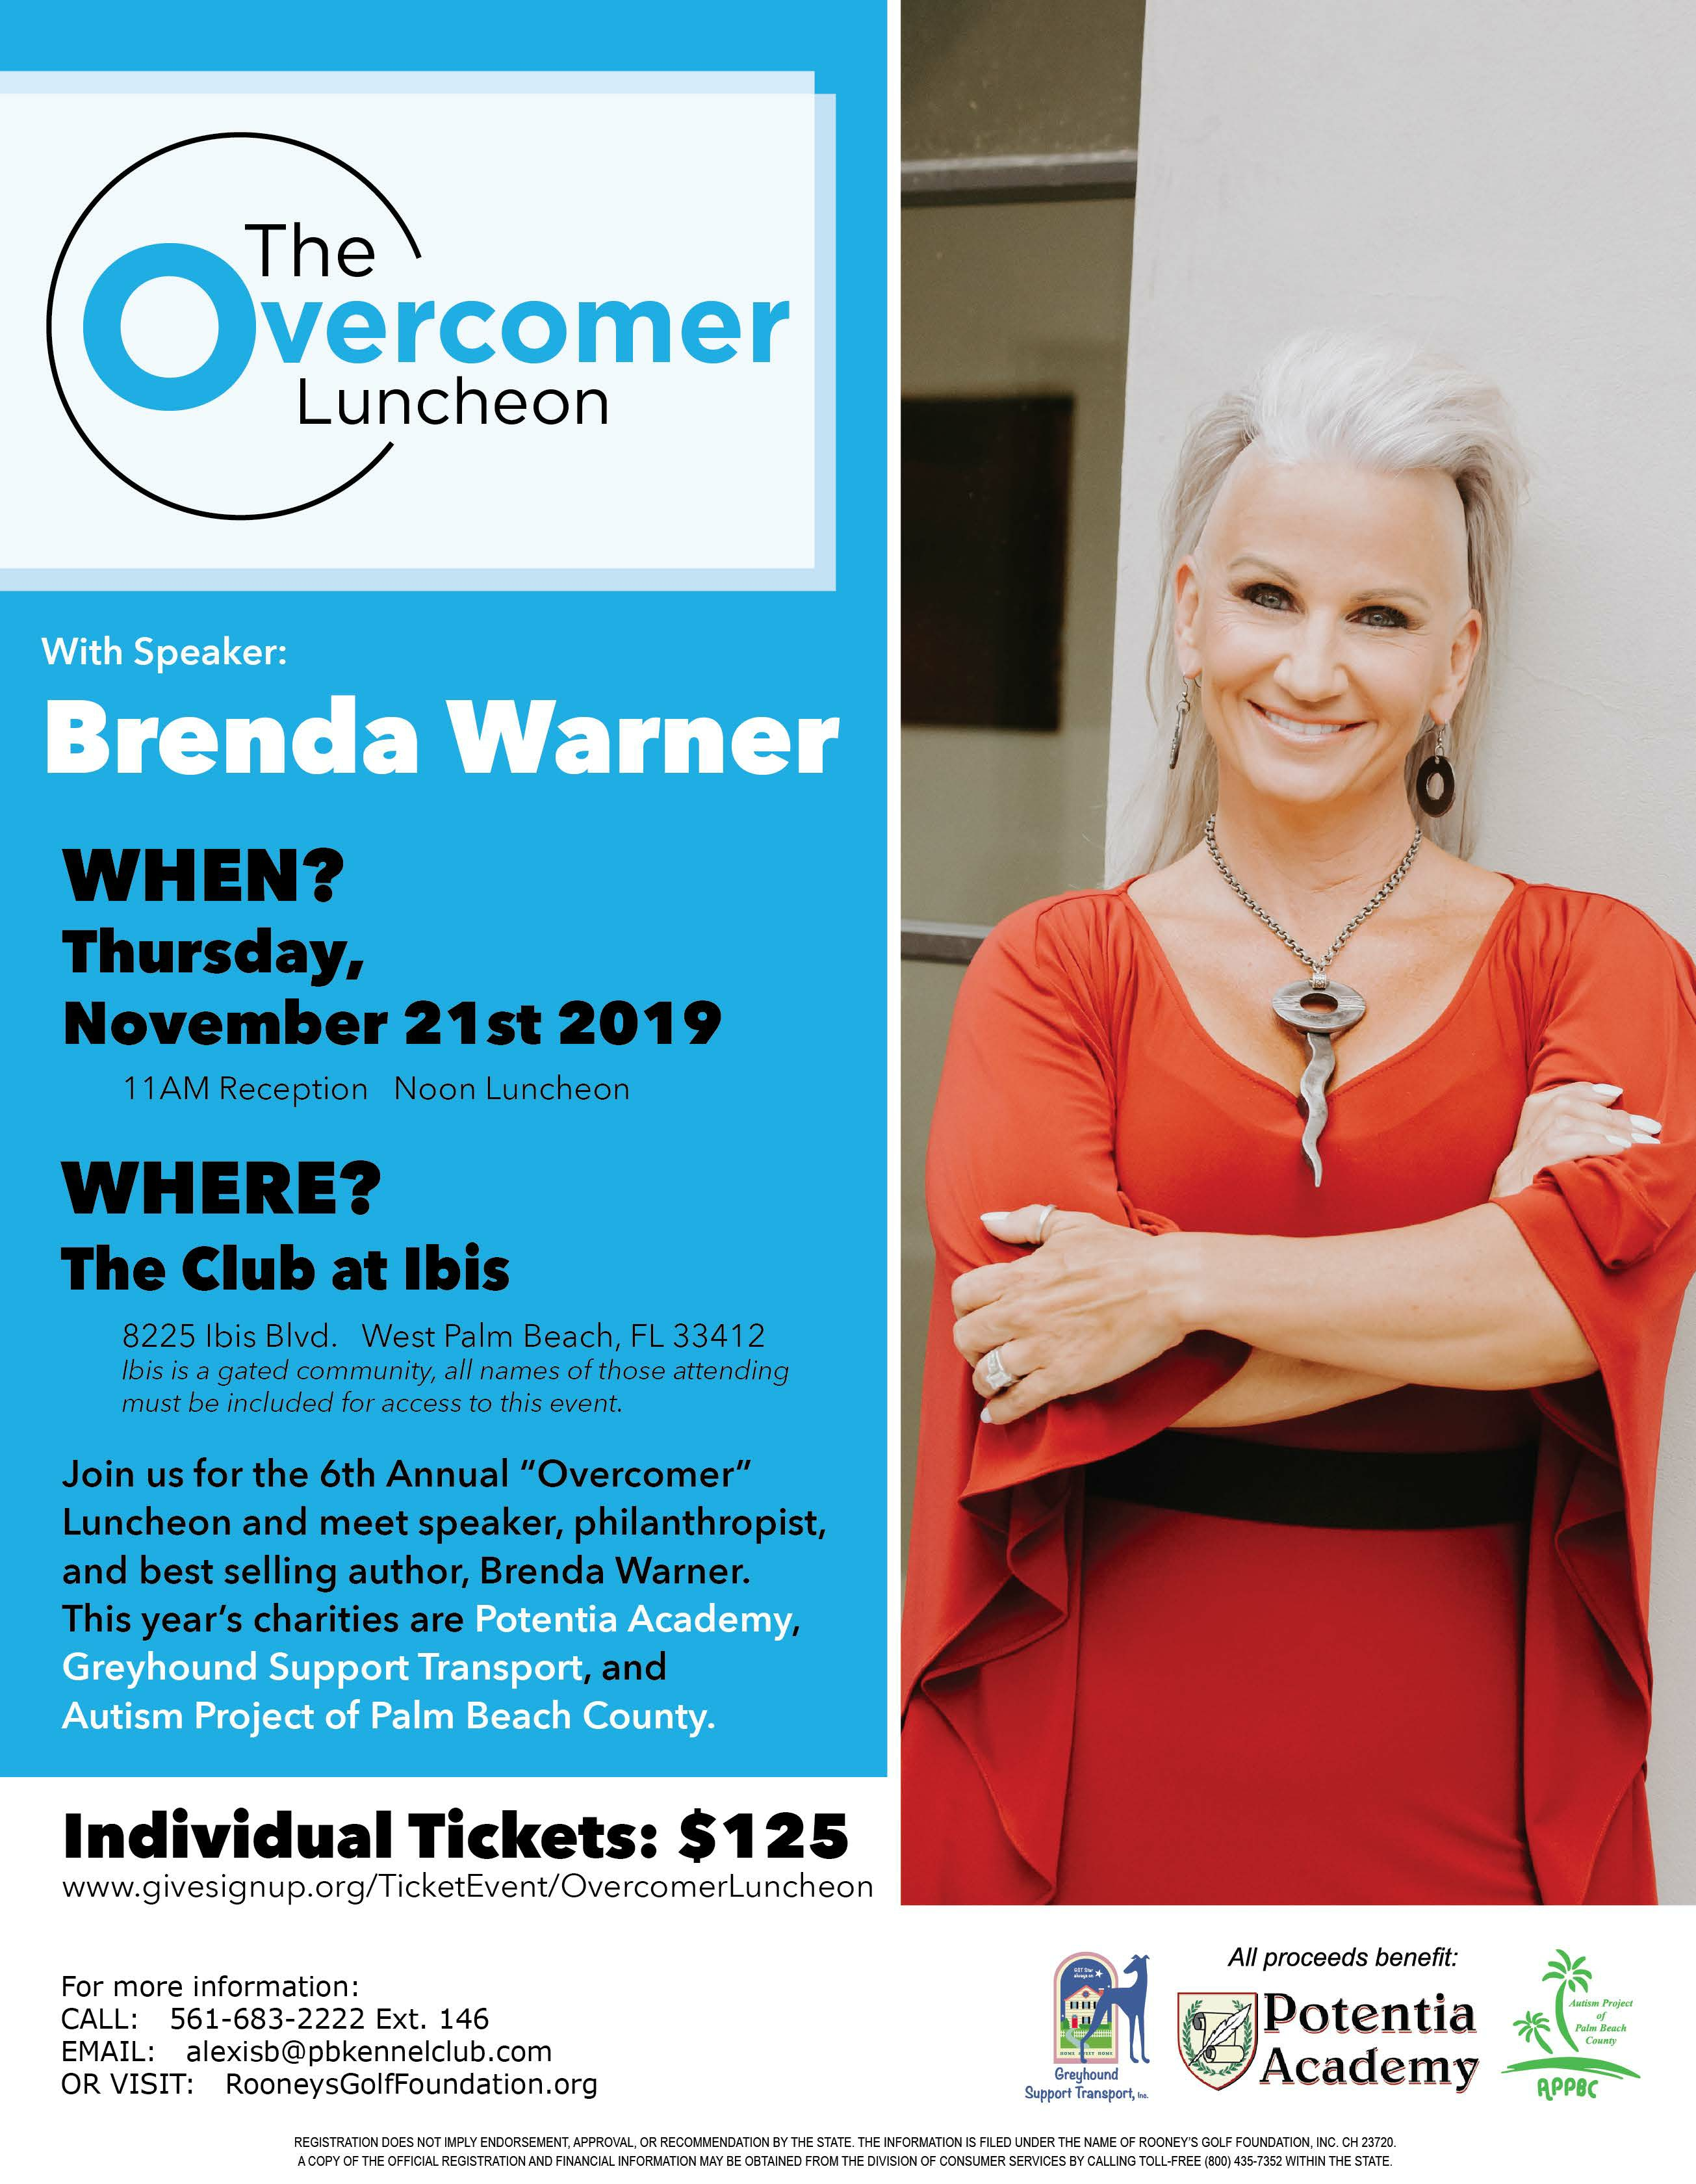 6th Annual Overcomer Luncheon A Huge Success!